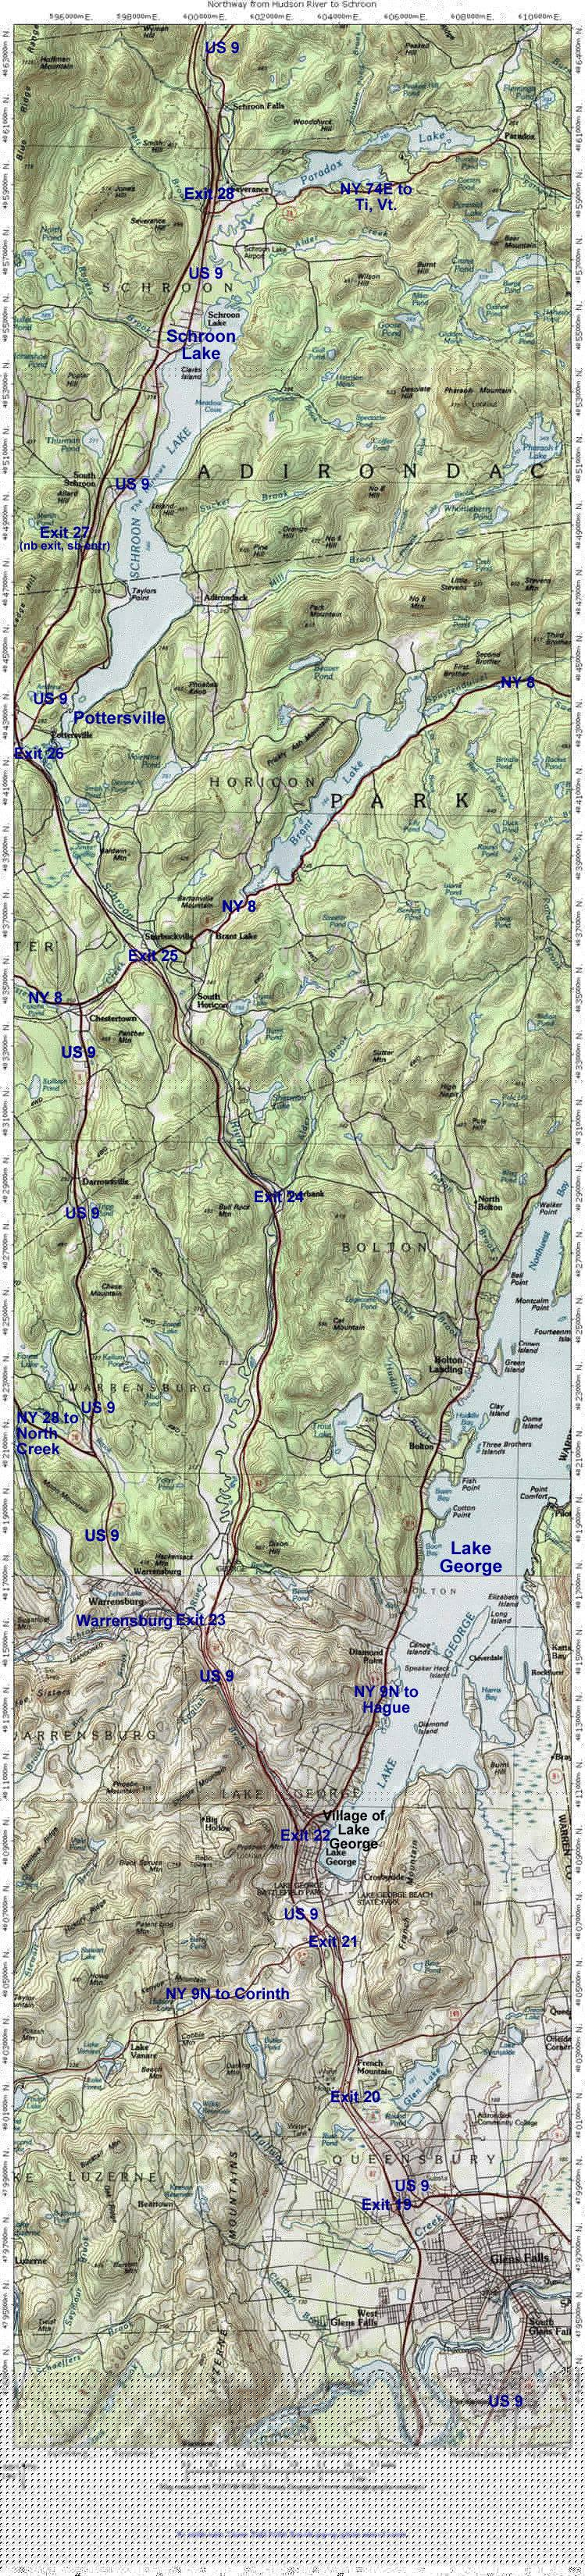 Road Map #2: From Glens Falls to Schroon Lake